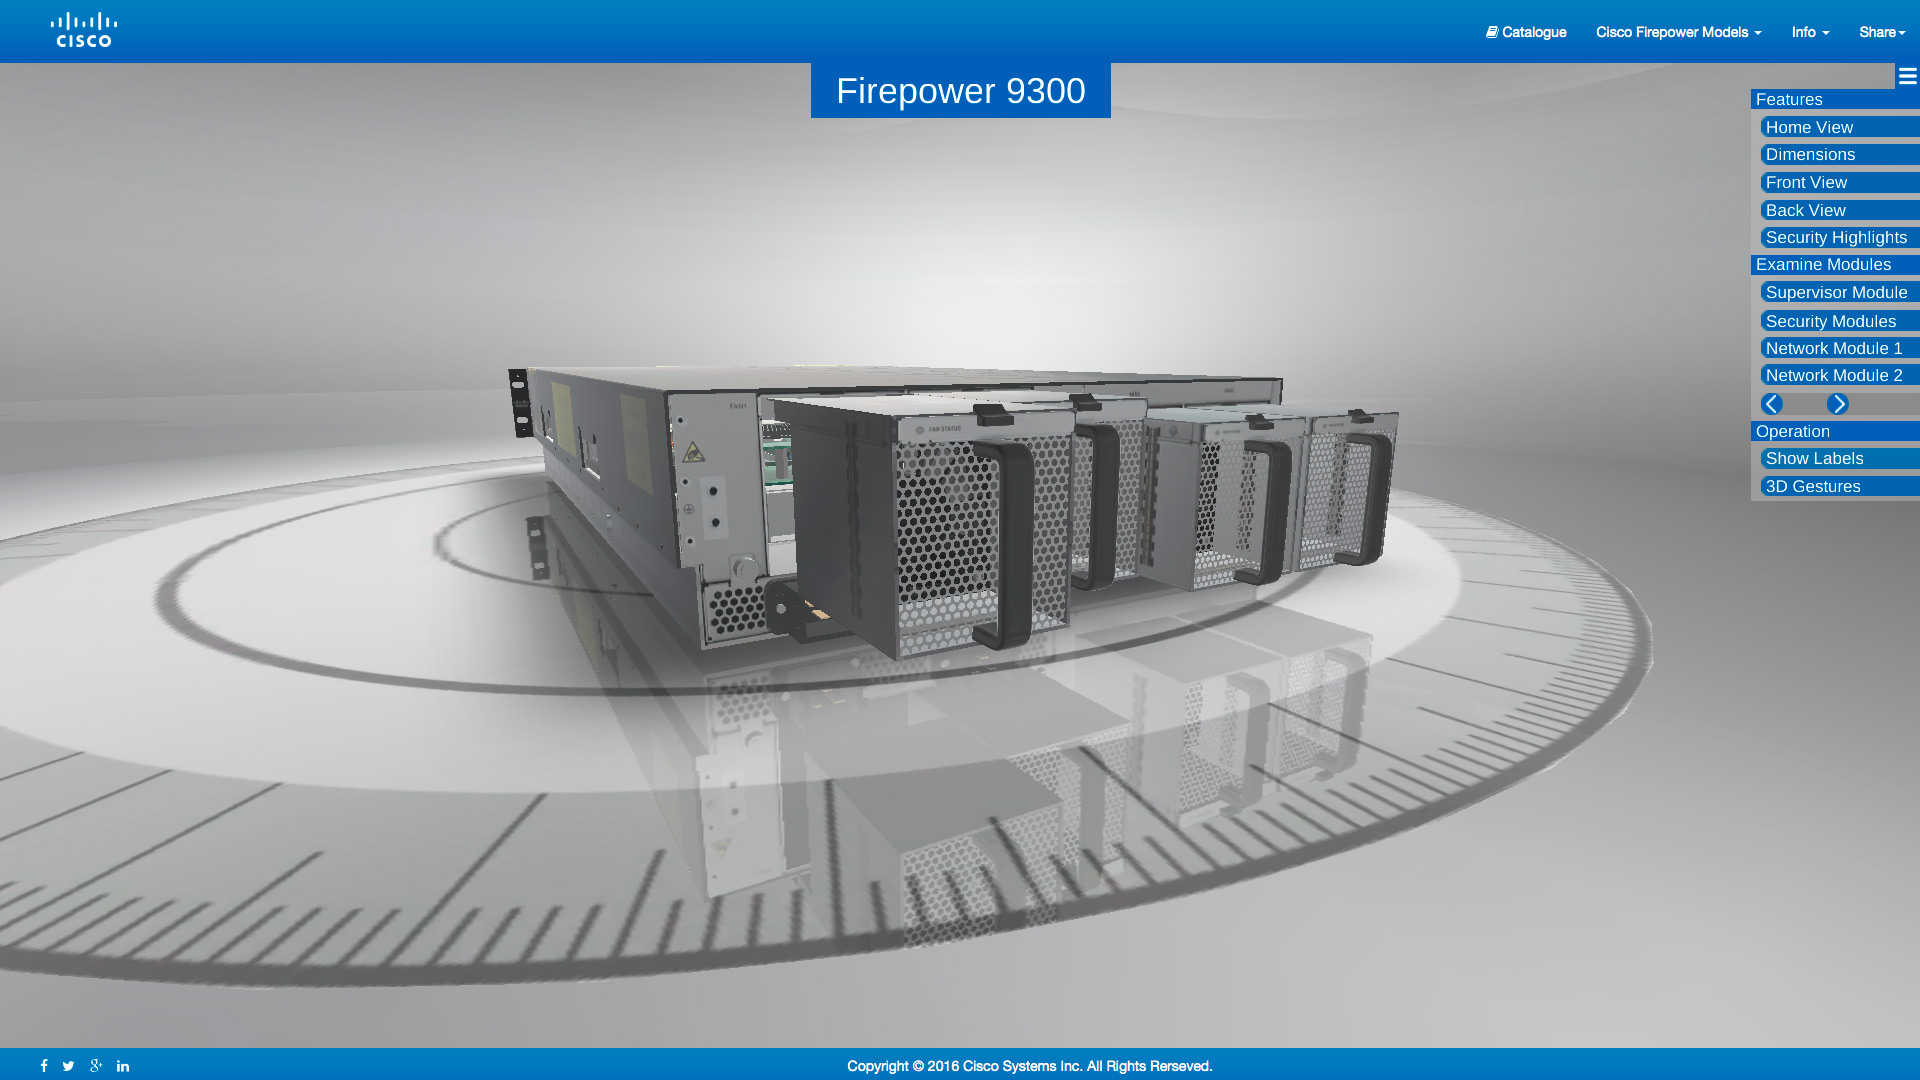 Cisco Interactive 3D Product Experience